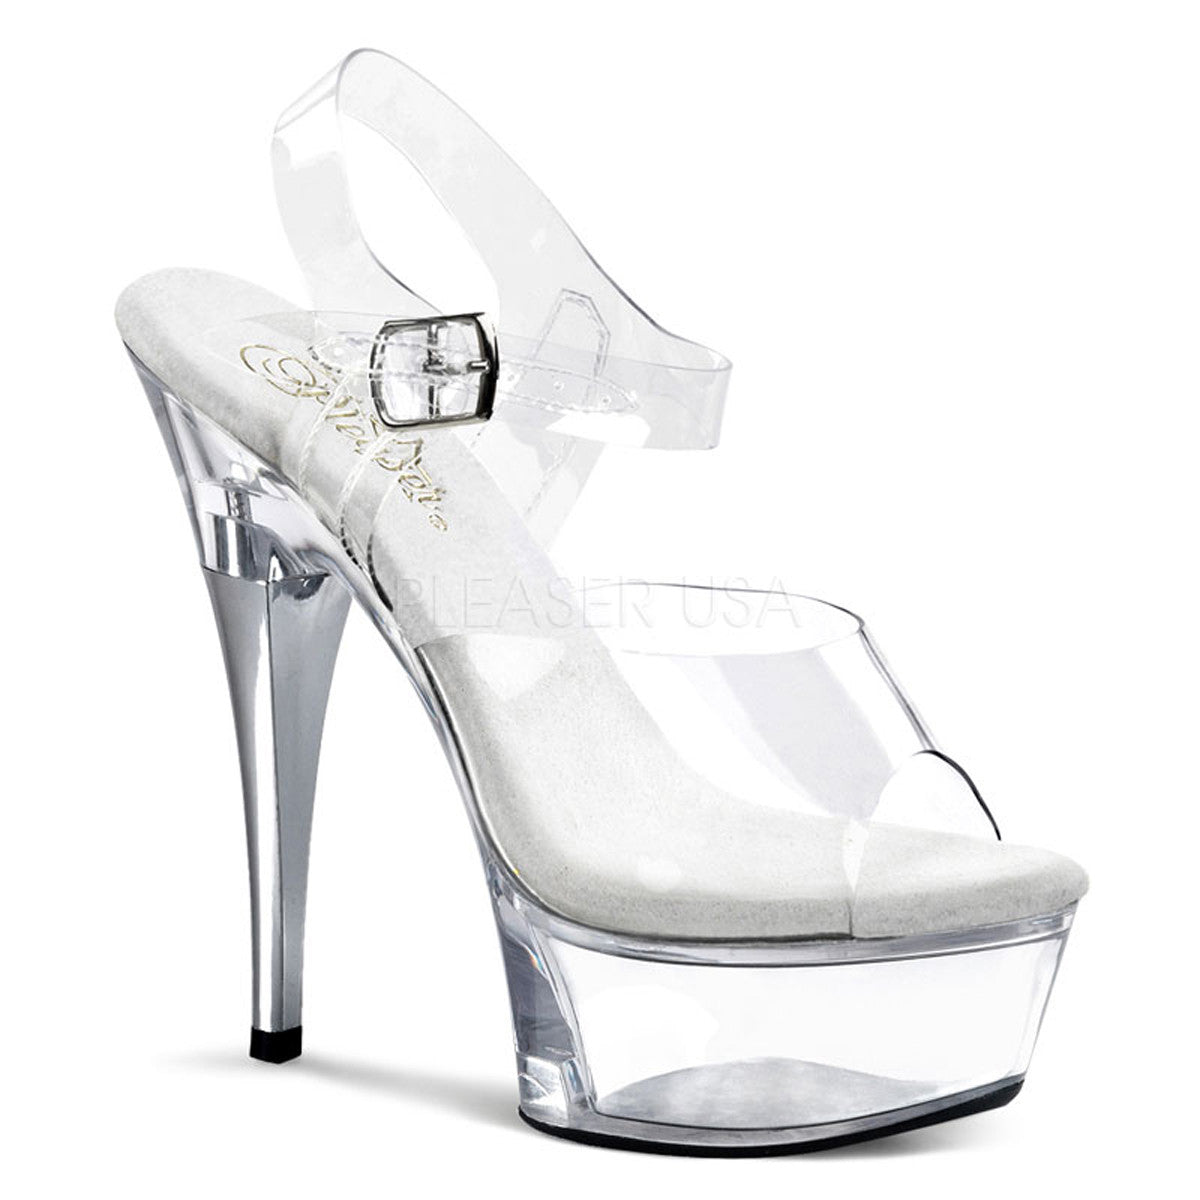 PLEASER CAPTIVA-608 Clear Ankle Strap Sandals - Shoecup.com - 1